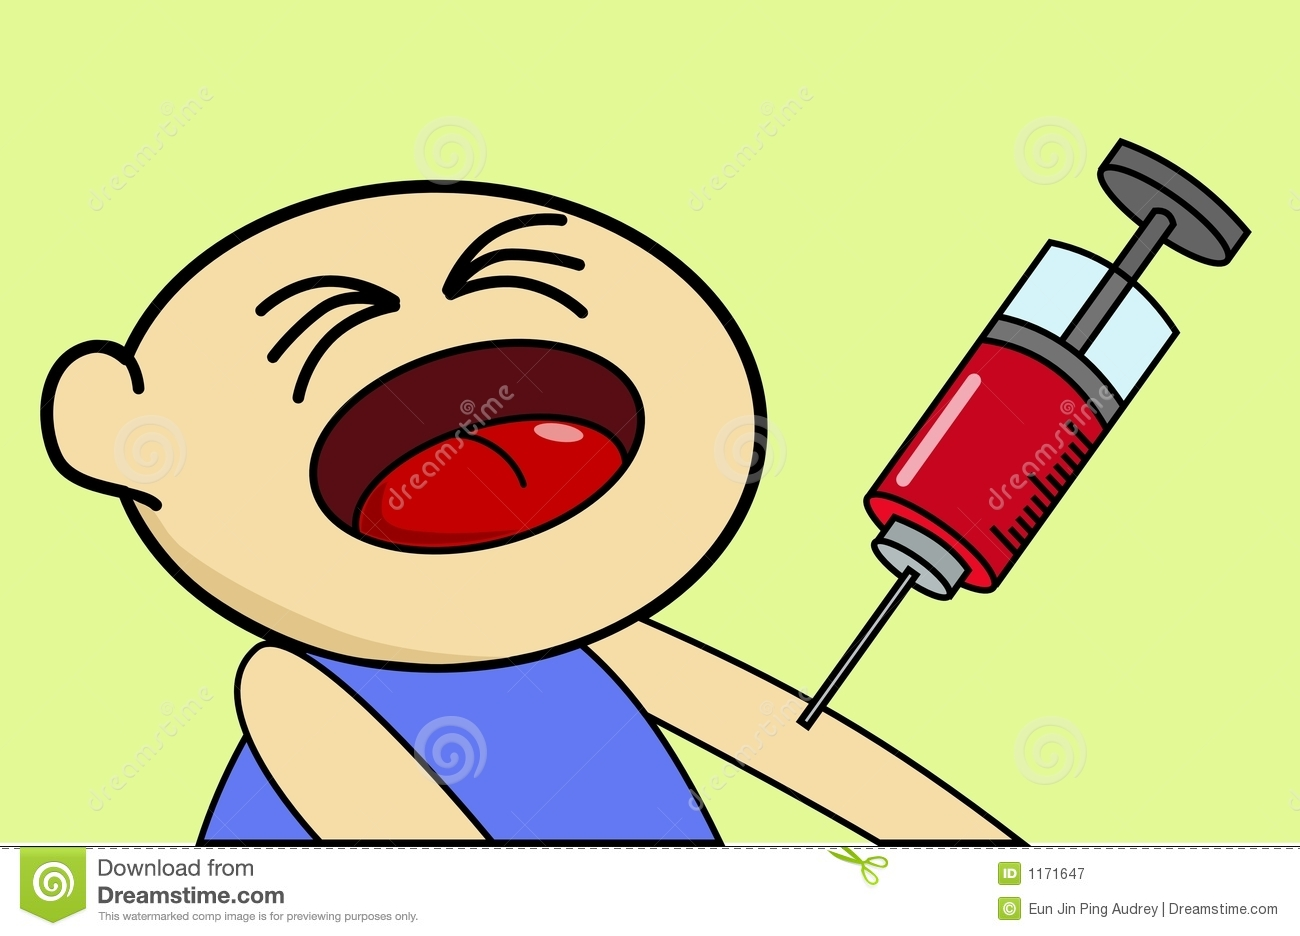 Injection Boy Royalty Free Stock Photography - Image: 1171647